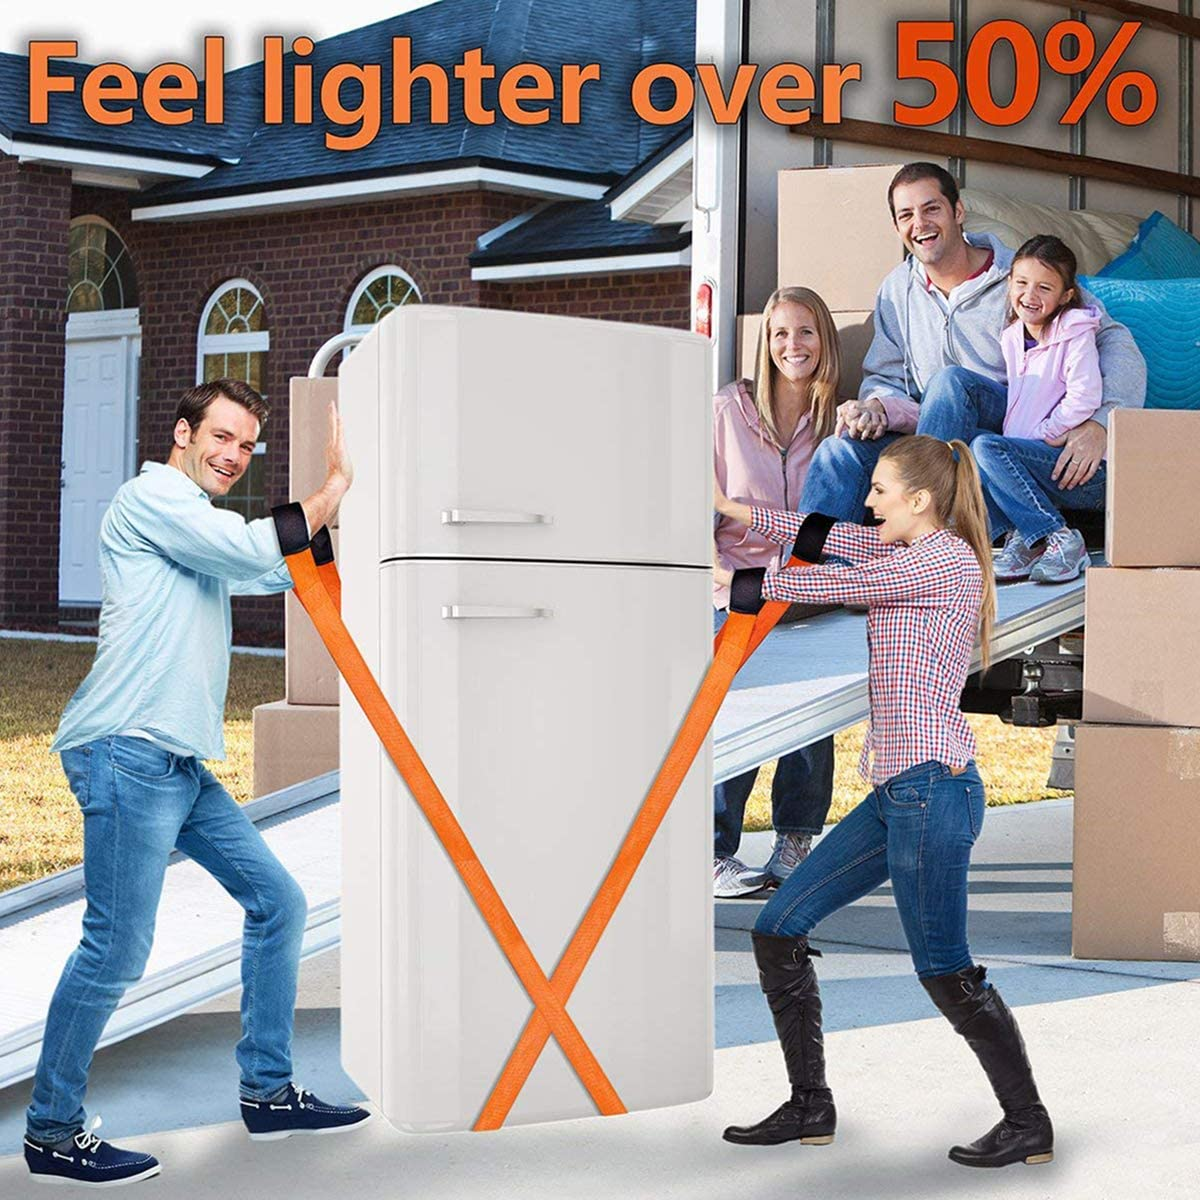 Appliances Mattresses 2 Person Moving System with Wrist Protection Sponge Fore Arm Forklift Lifting Straps Fambasis Moving Back Strap Easily Carry Furniture or Any Heavy Object